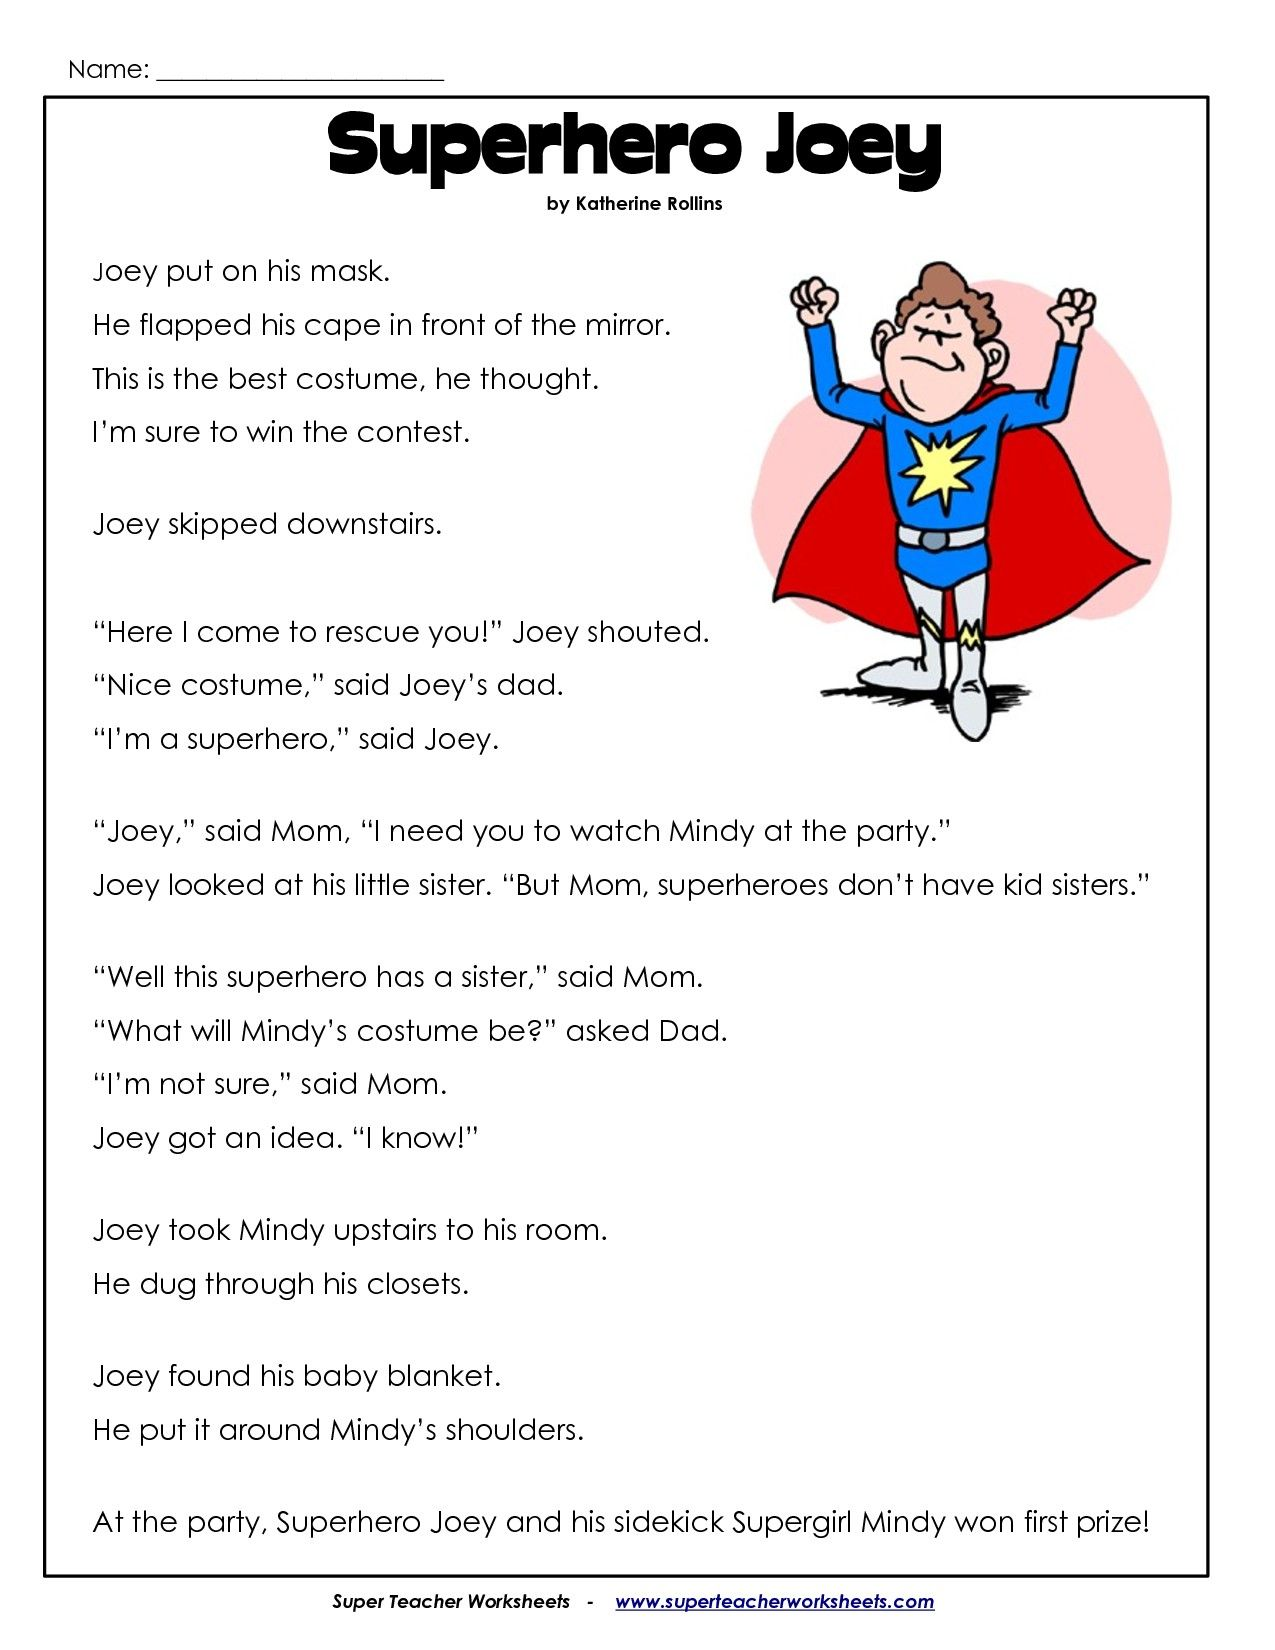 Worksheet Second Grade Comprehension Passages reading comprehension passages for 2nd grade google search jp worksheets pdf